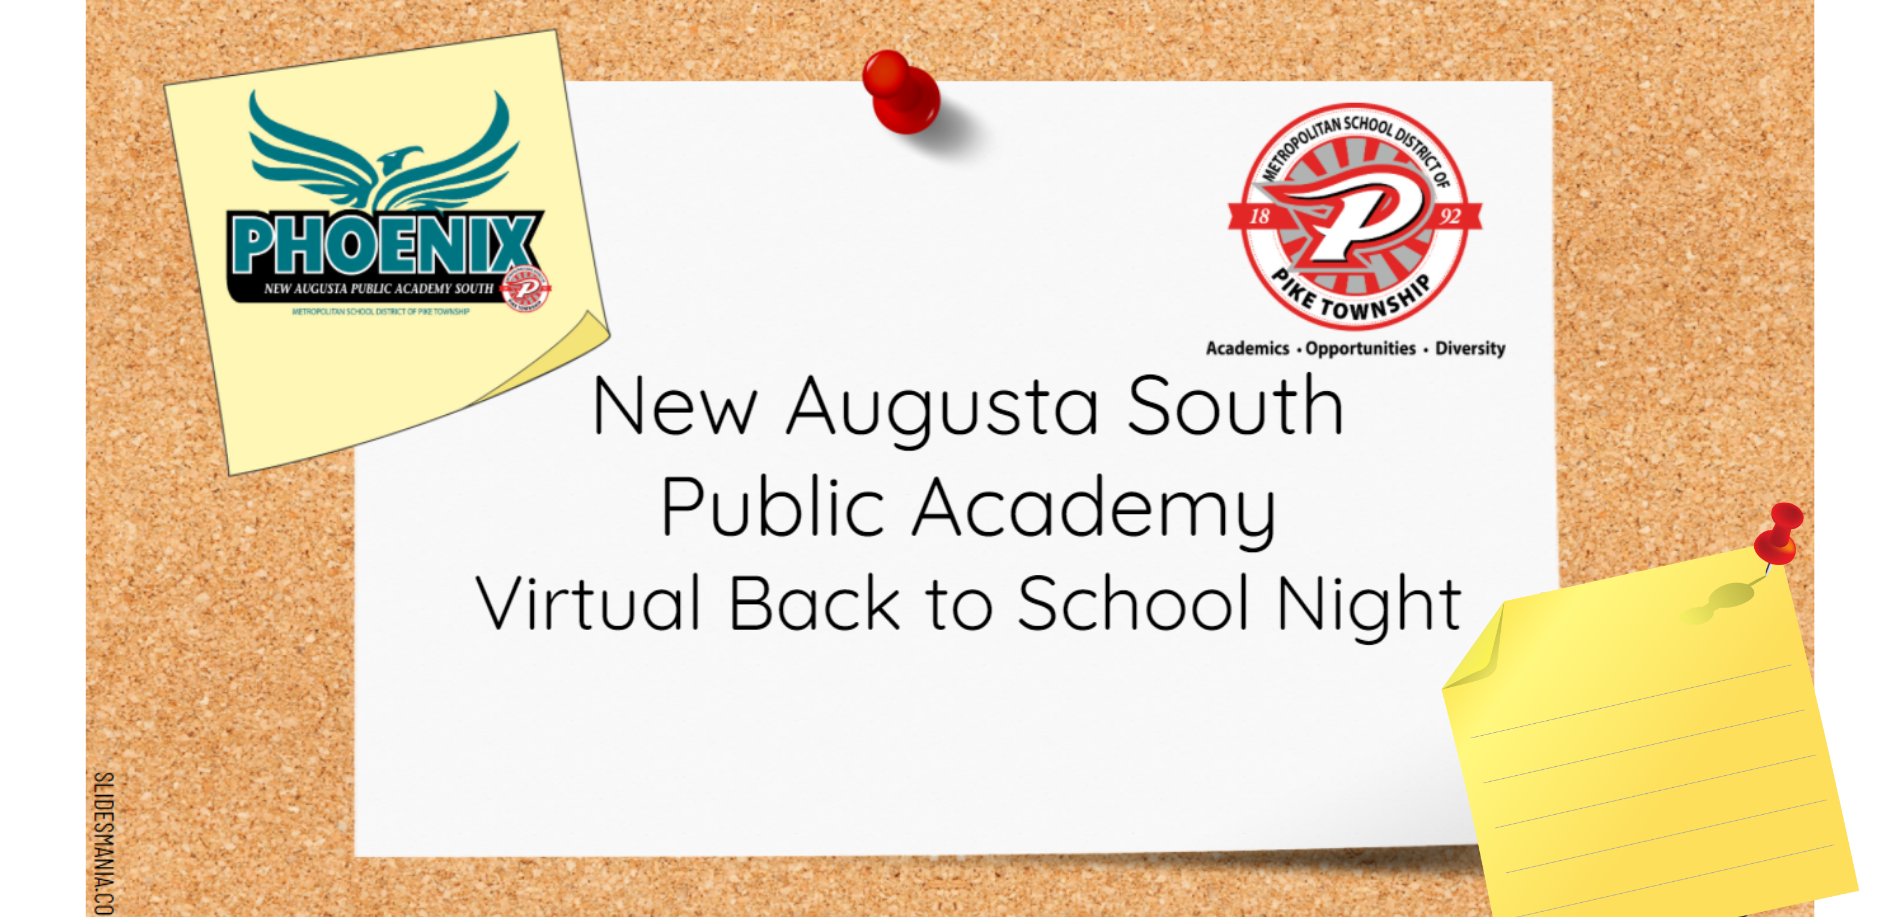 Image of post it board with the text: New Augusta South Public Academy Virtual Back to school Night; image of New Augusta South Pheonix and Pike logo